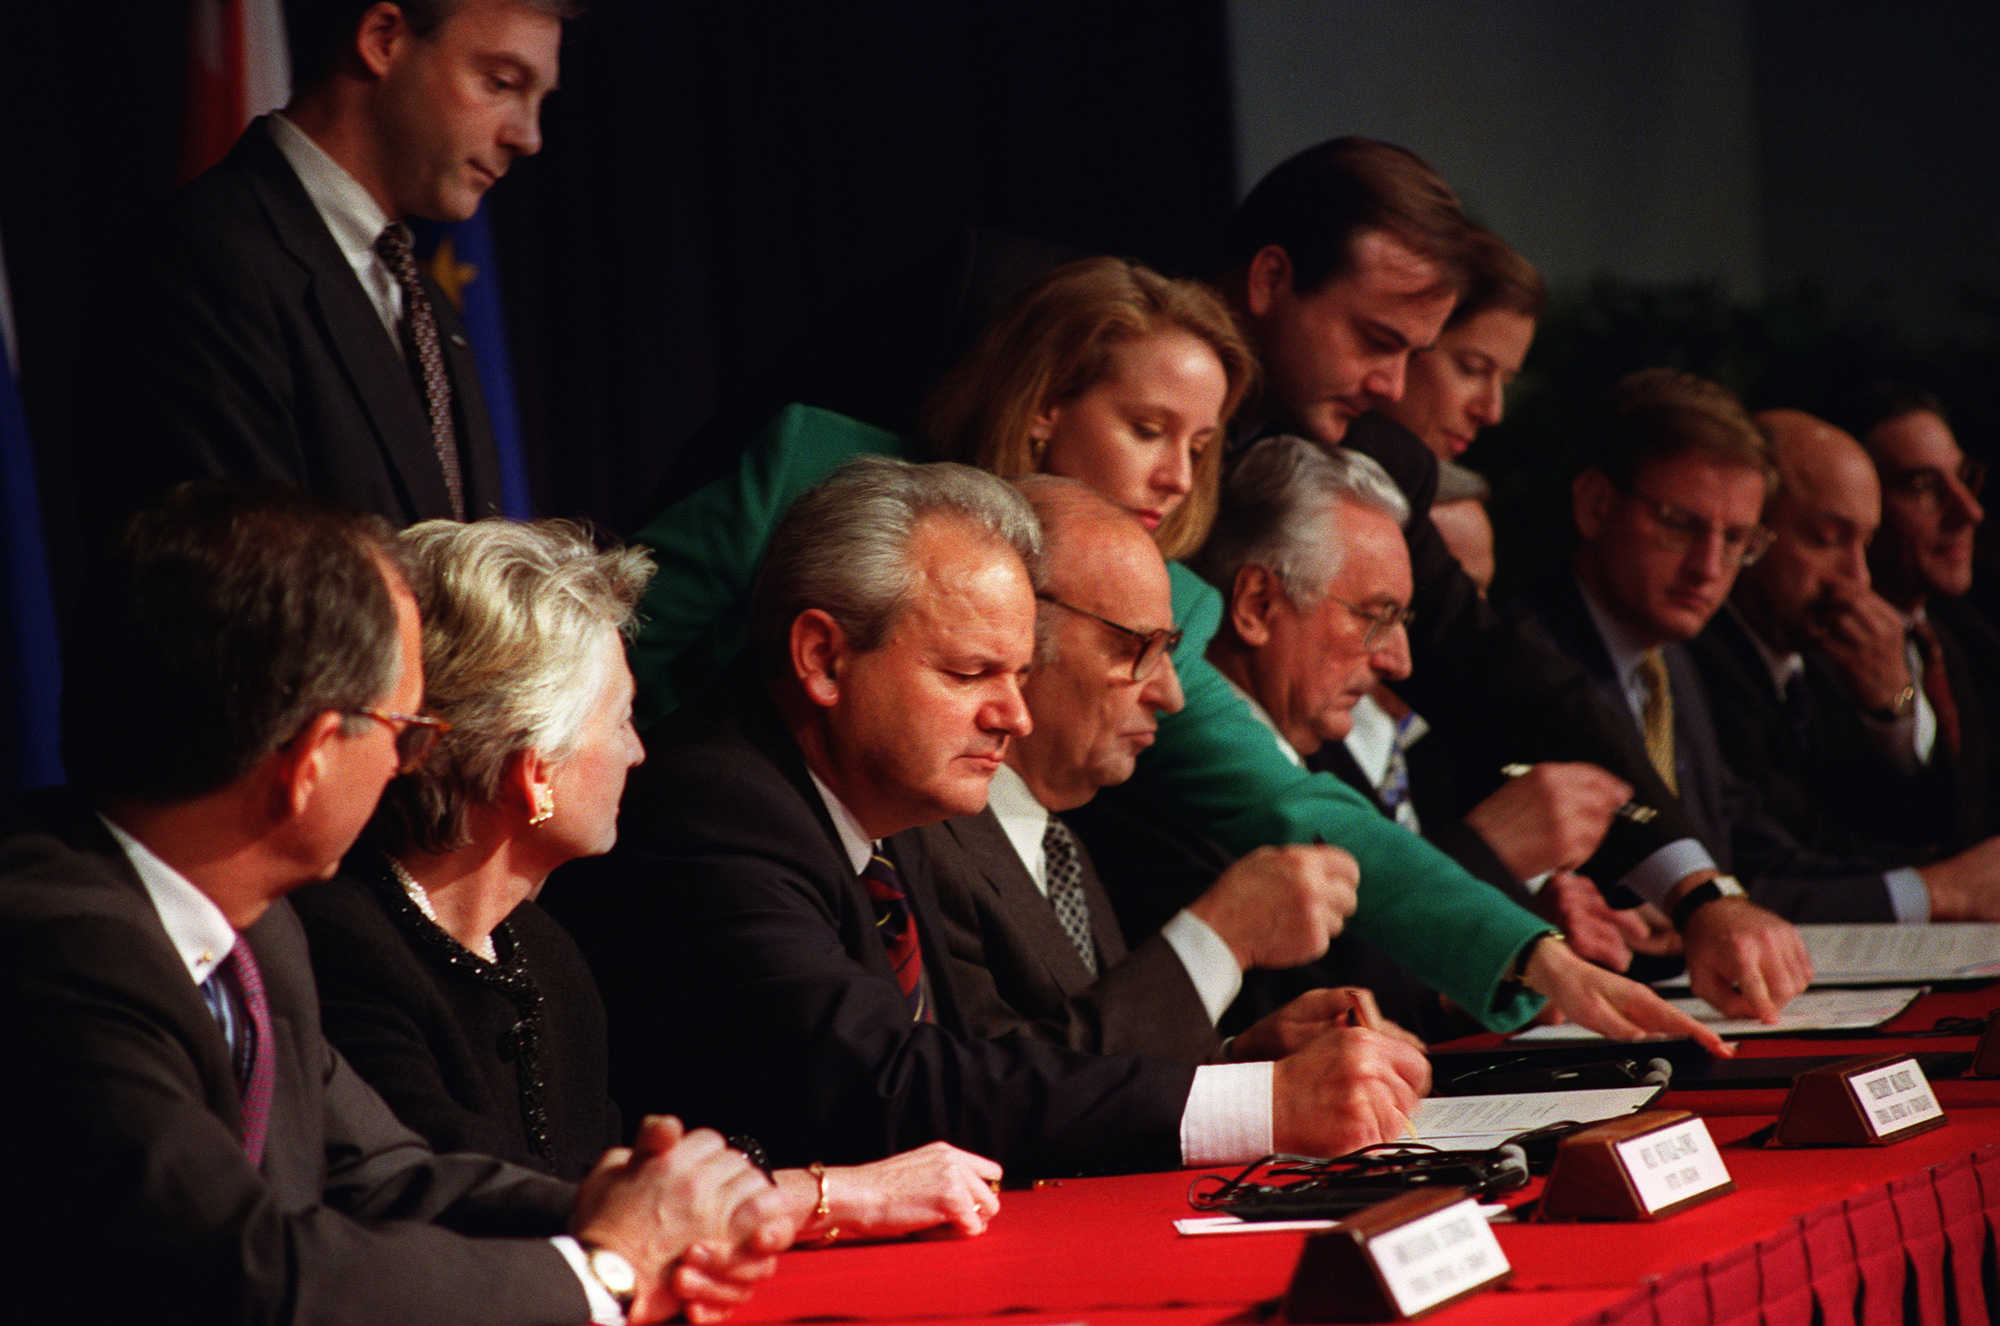 The 1995 Dayton Agreement, which led to the Bosnian War